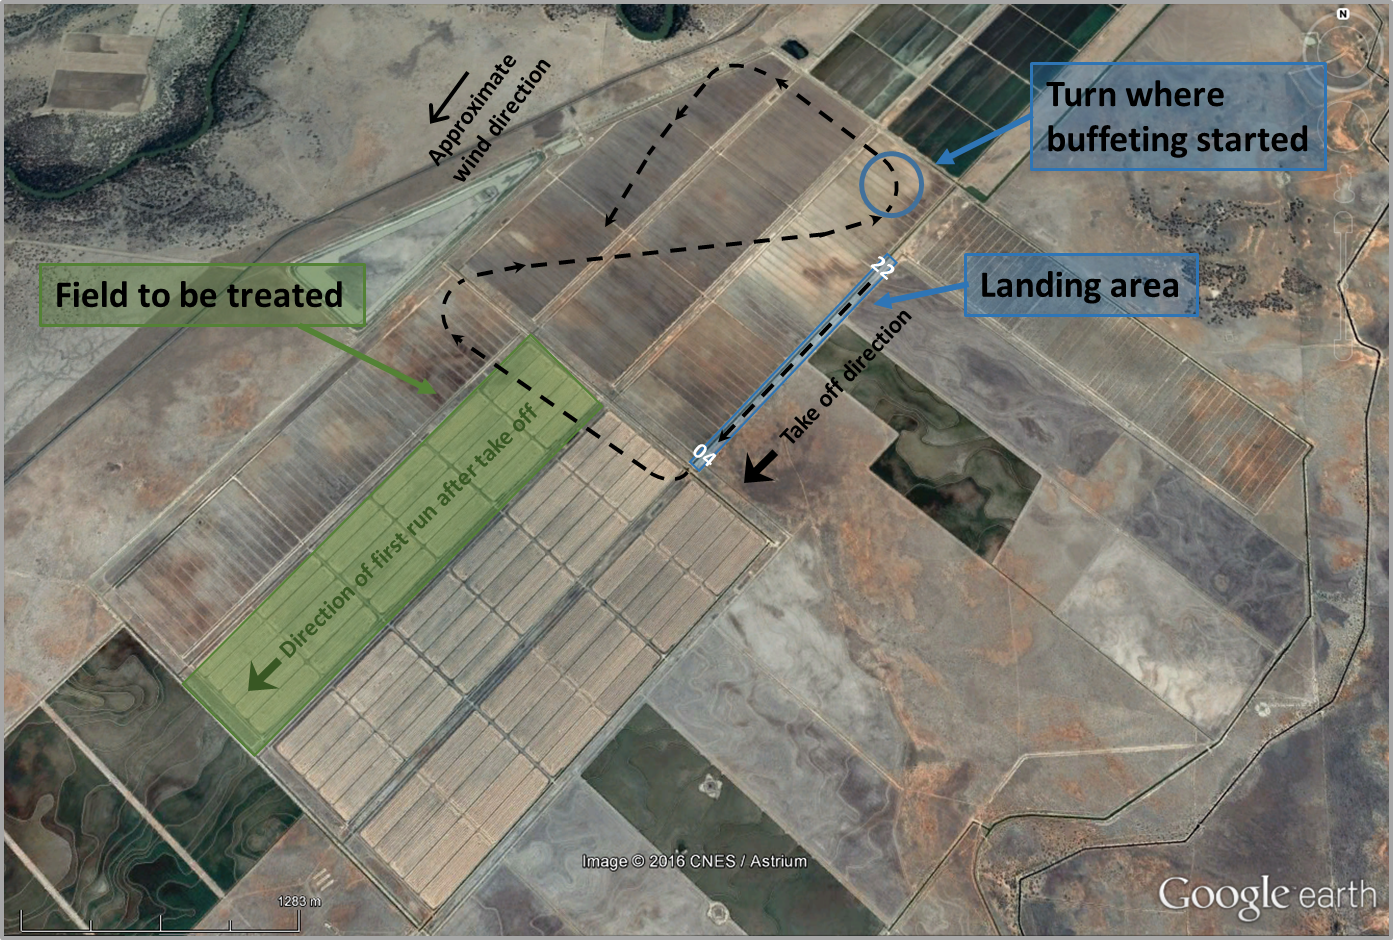 Figure 1: Map showing the location of the landing area, field to be treated and the aircraft flight path